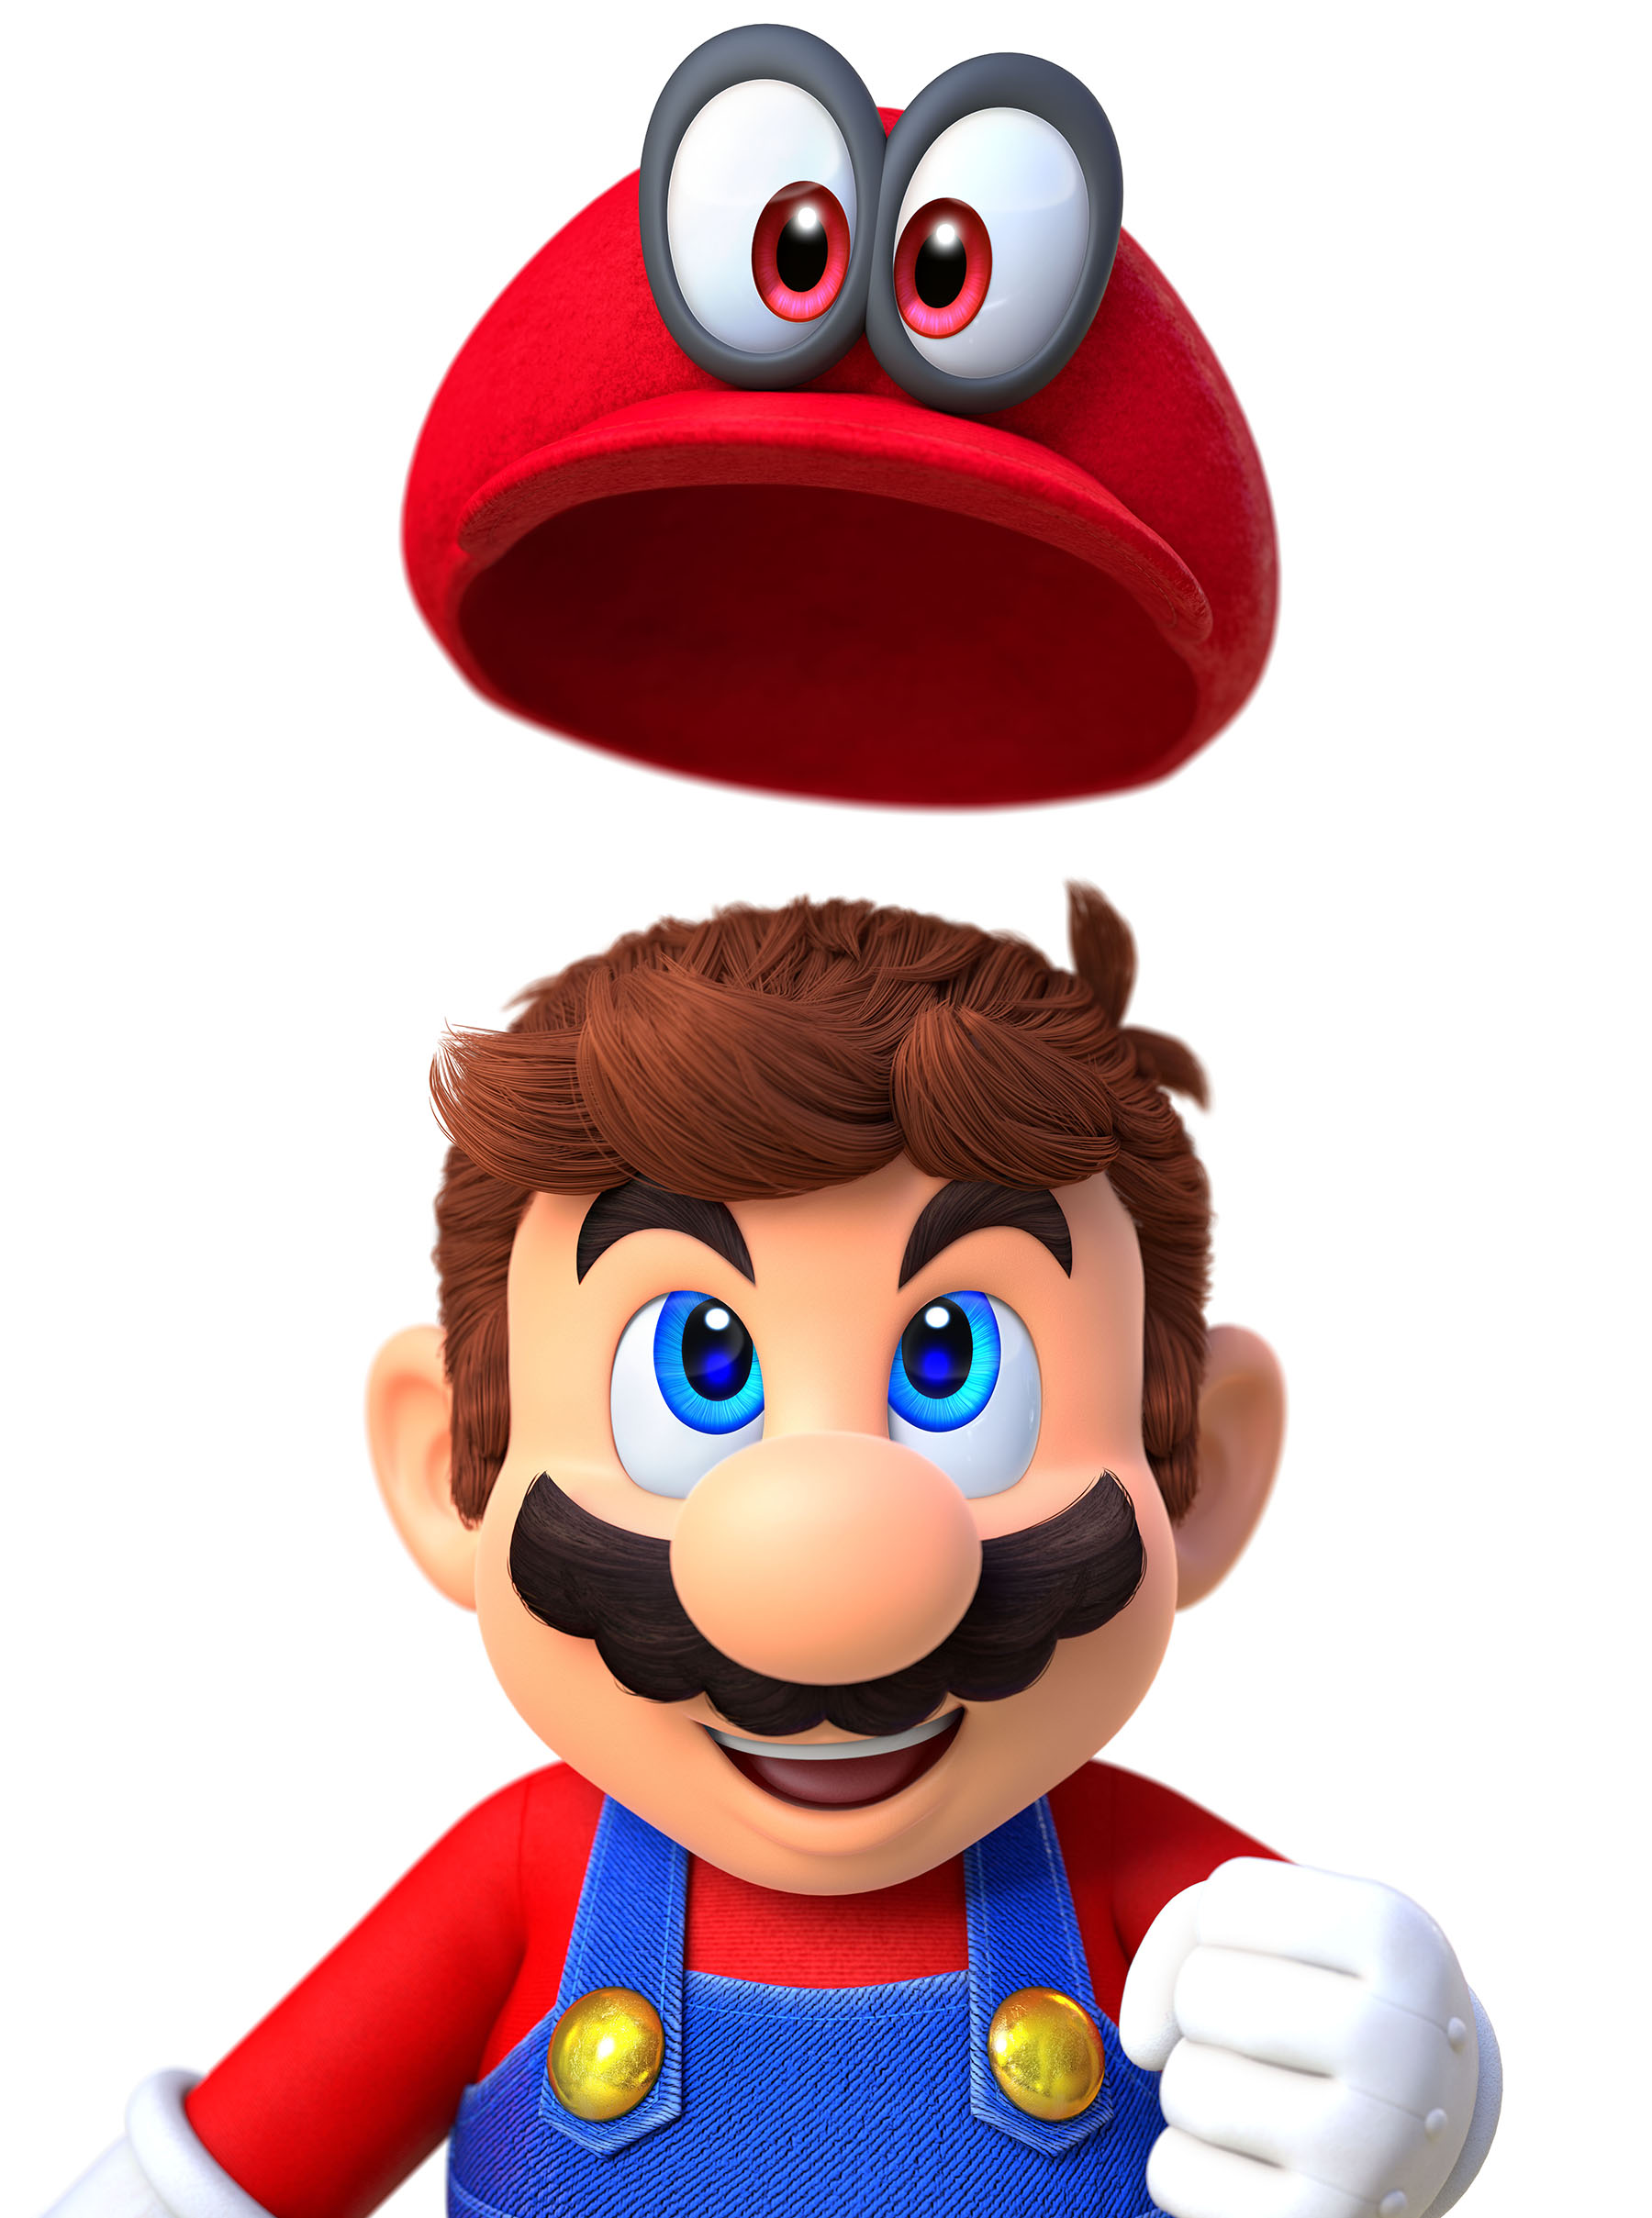 Super Mario Odyssey Screen Render 2